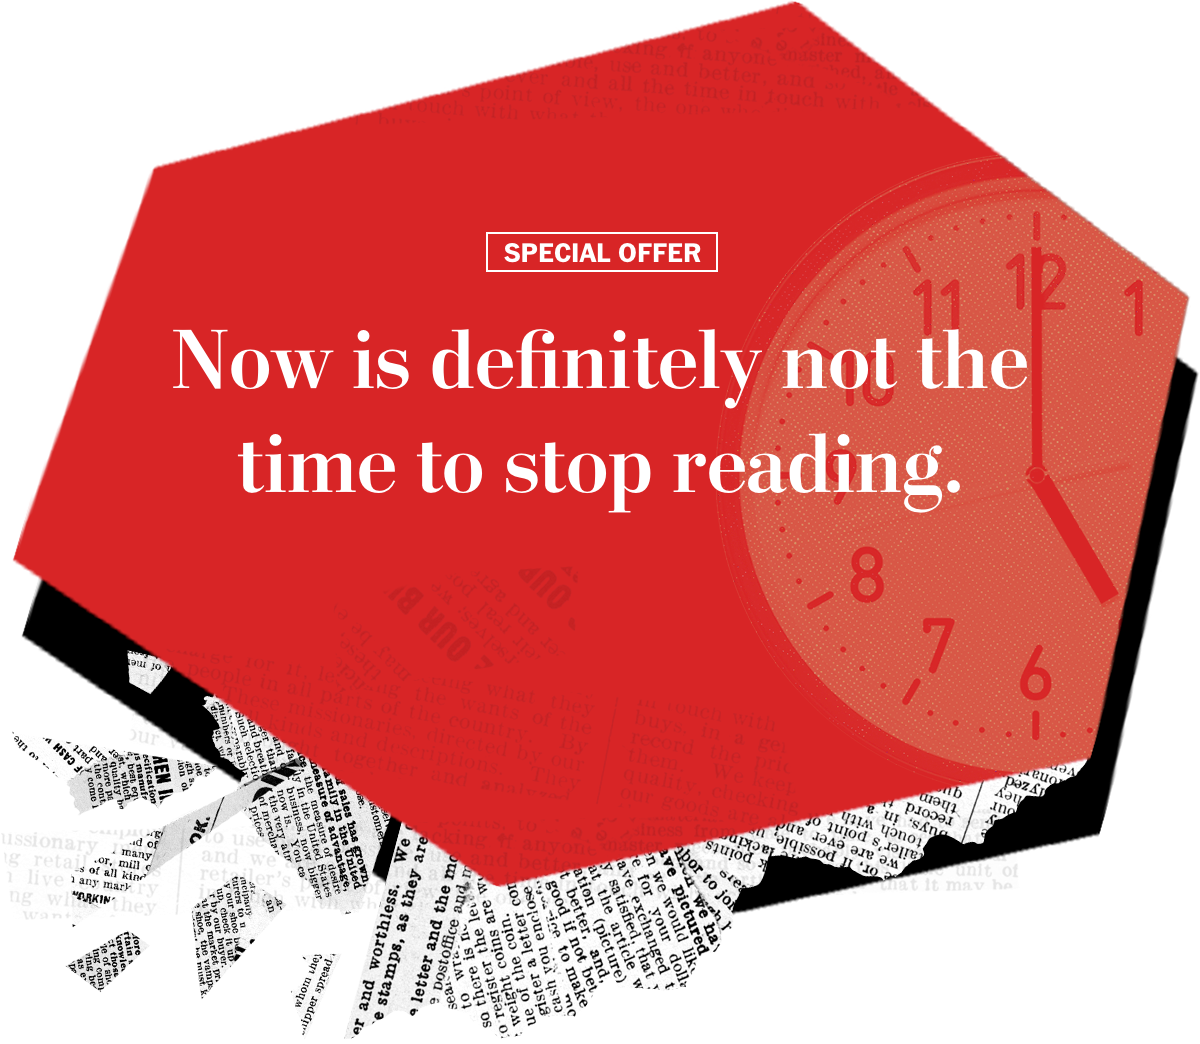 SPECIAL OFFER | Now is definitely not the time to stop reading.